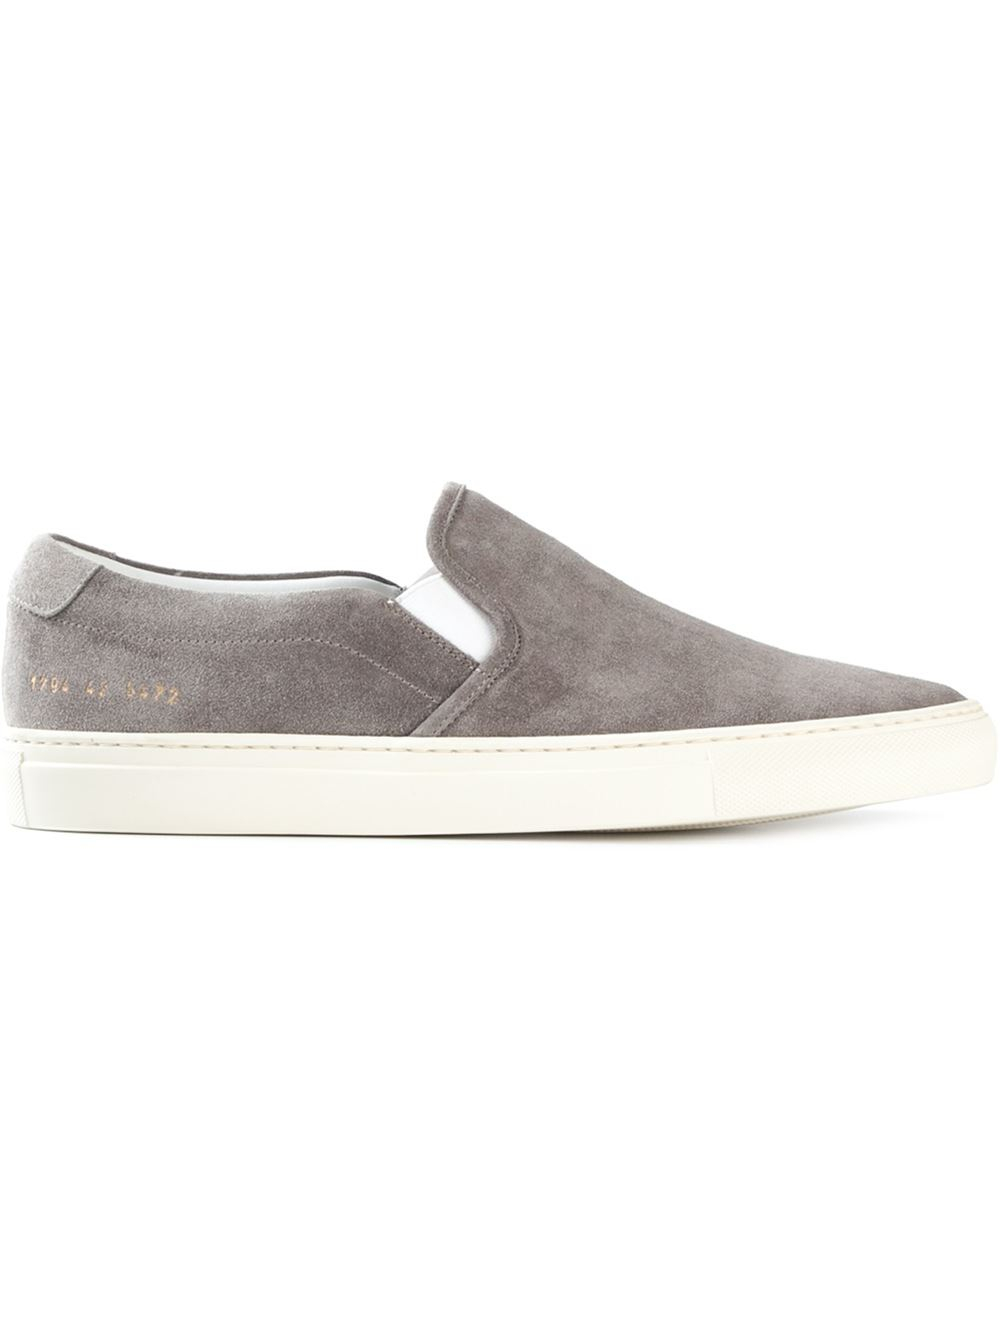 Common Projects Slip-On Sneakers in